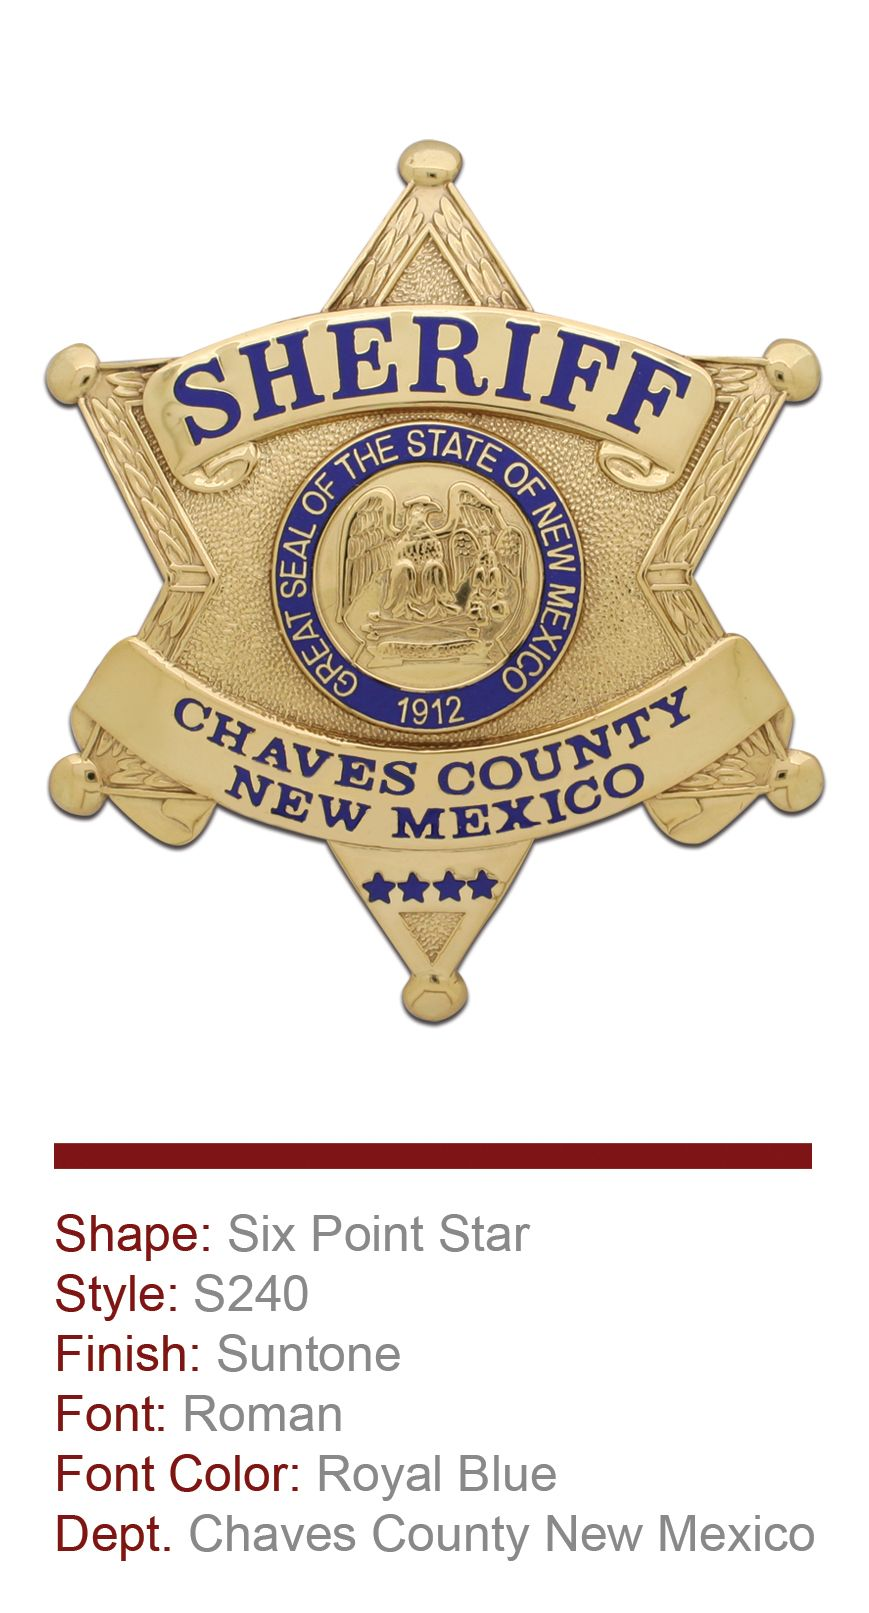 Chaves County New Mexico